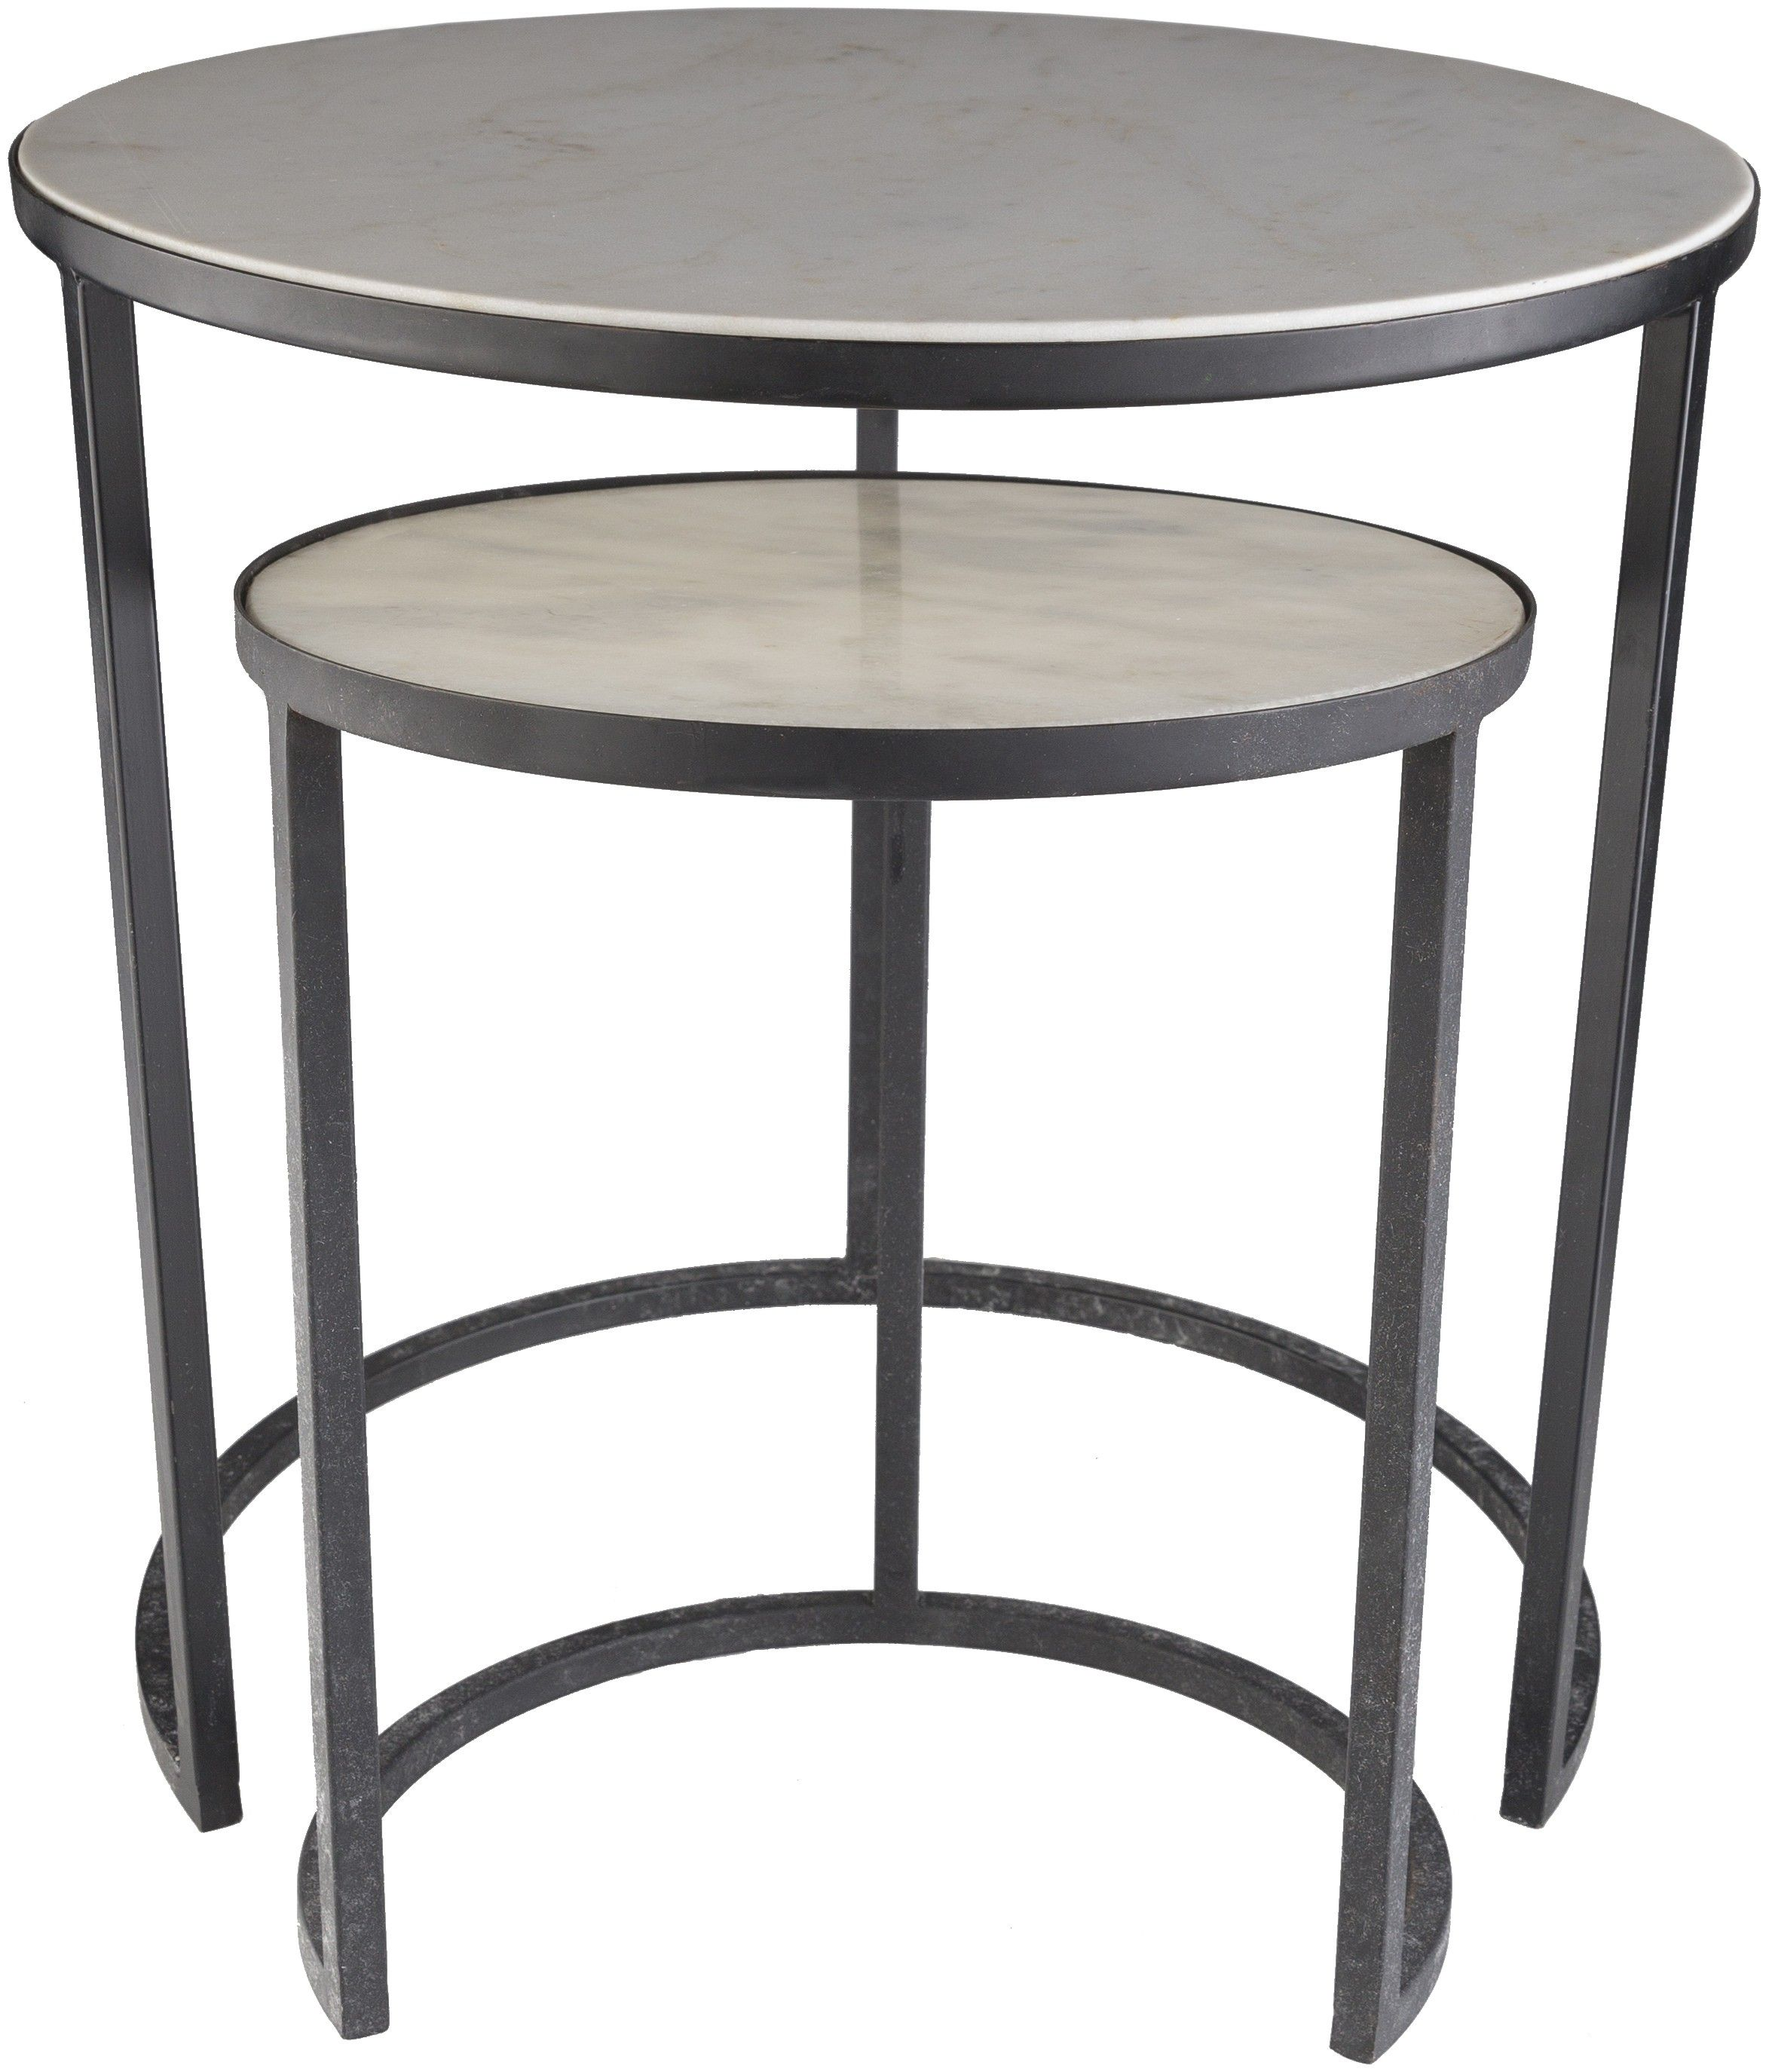 lulu clea nesting tables iron marbles and industrial knurl accent set plastic garden storage boxes drum table chic entrance hall small deck chairs two living room tall mirrored